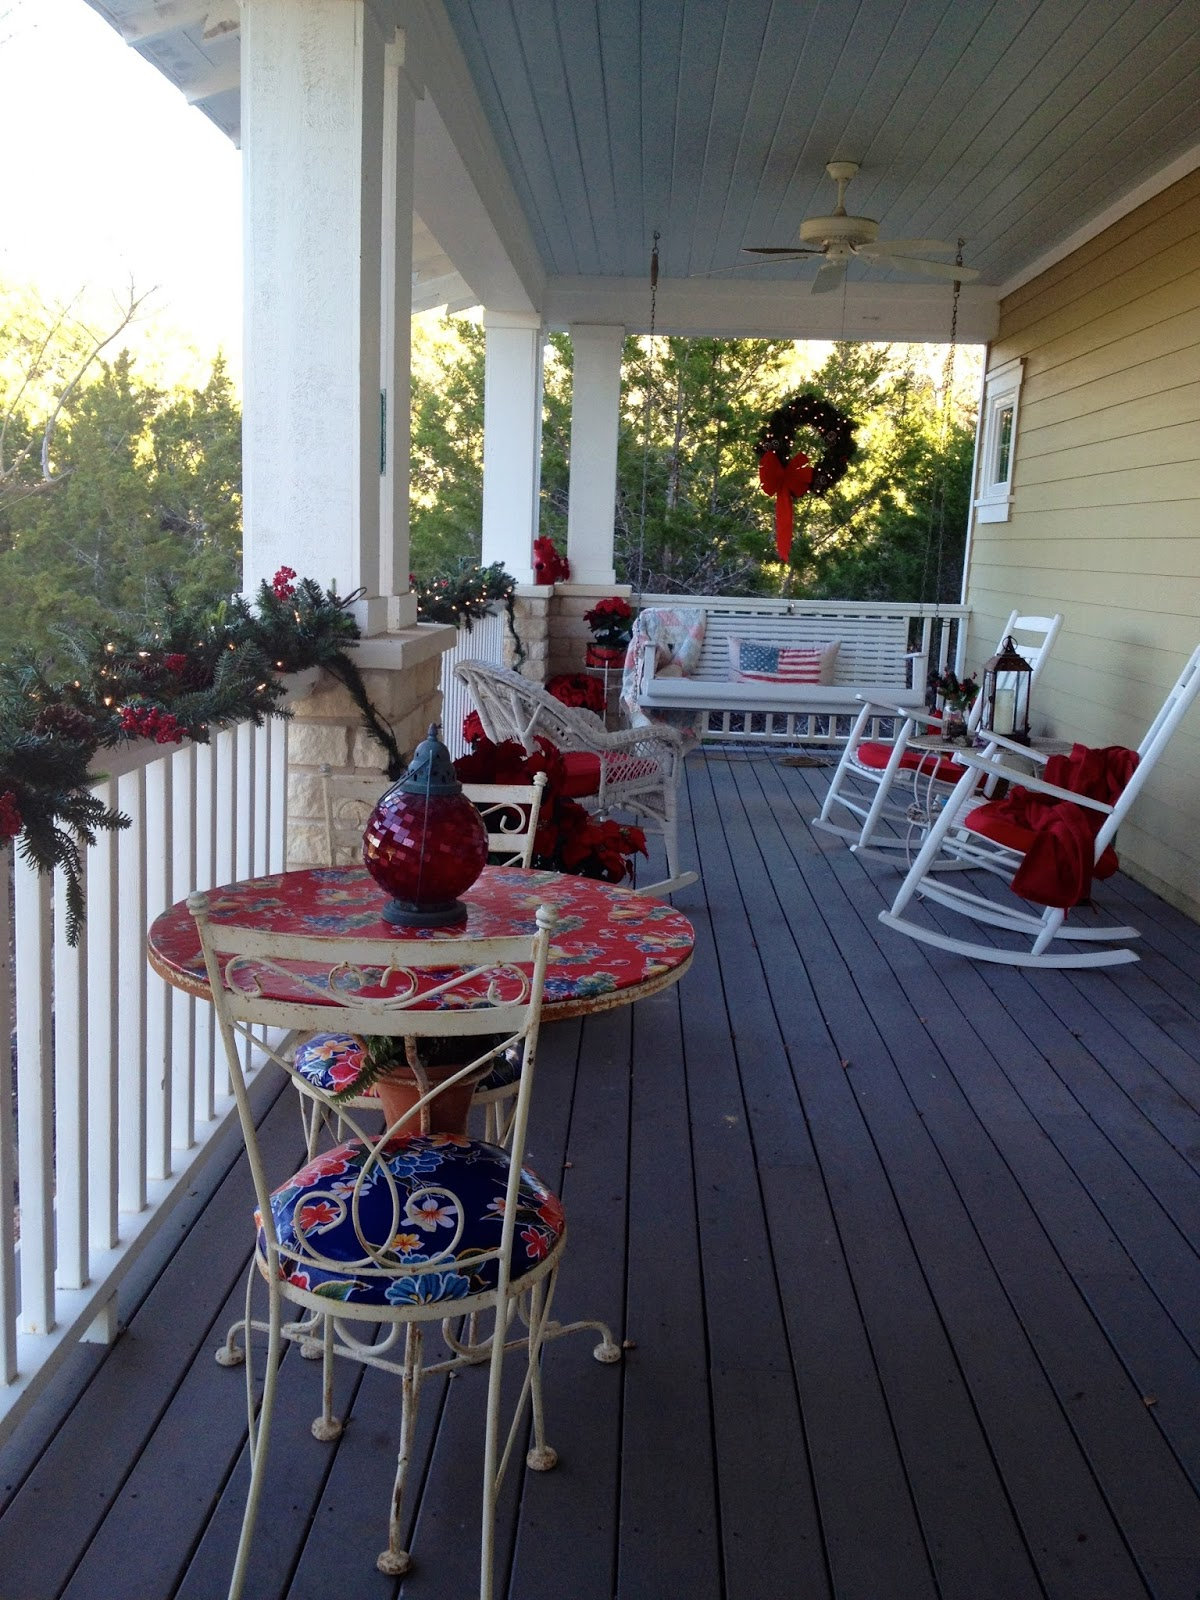 Ice Cream Parlor Table And Chairs Love Seat Chair The Cul-de-sac: A Porch For All Seasons